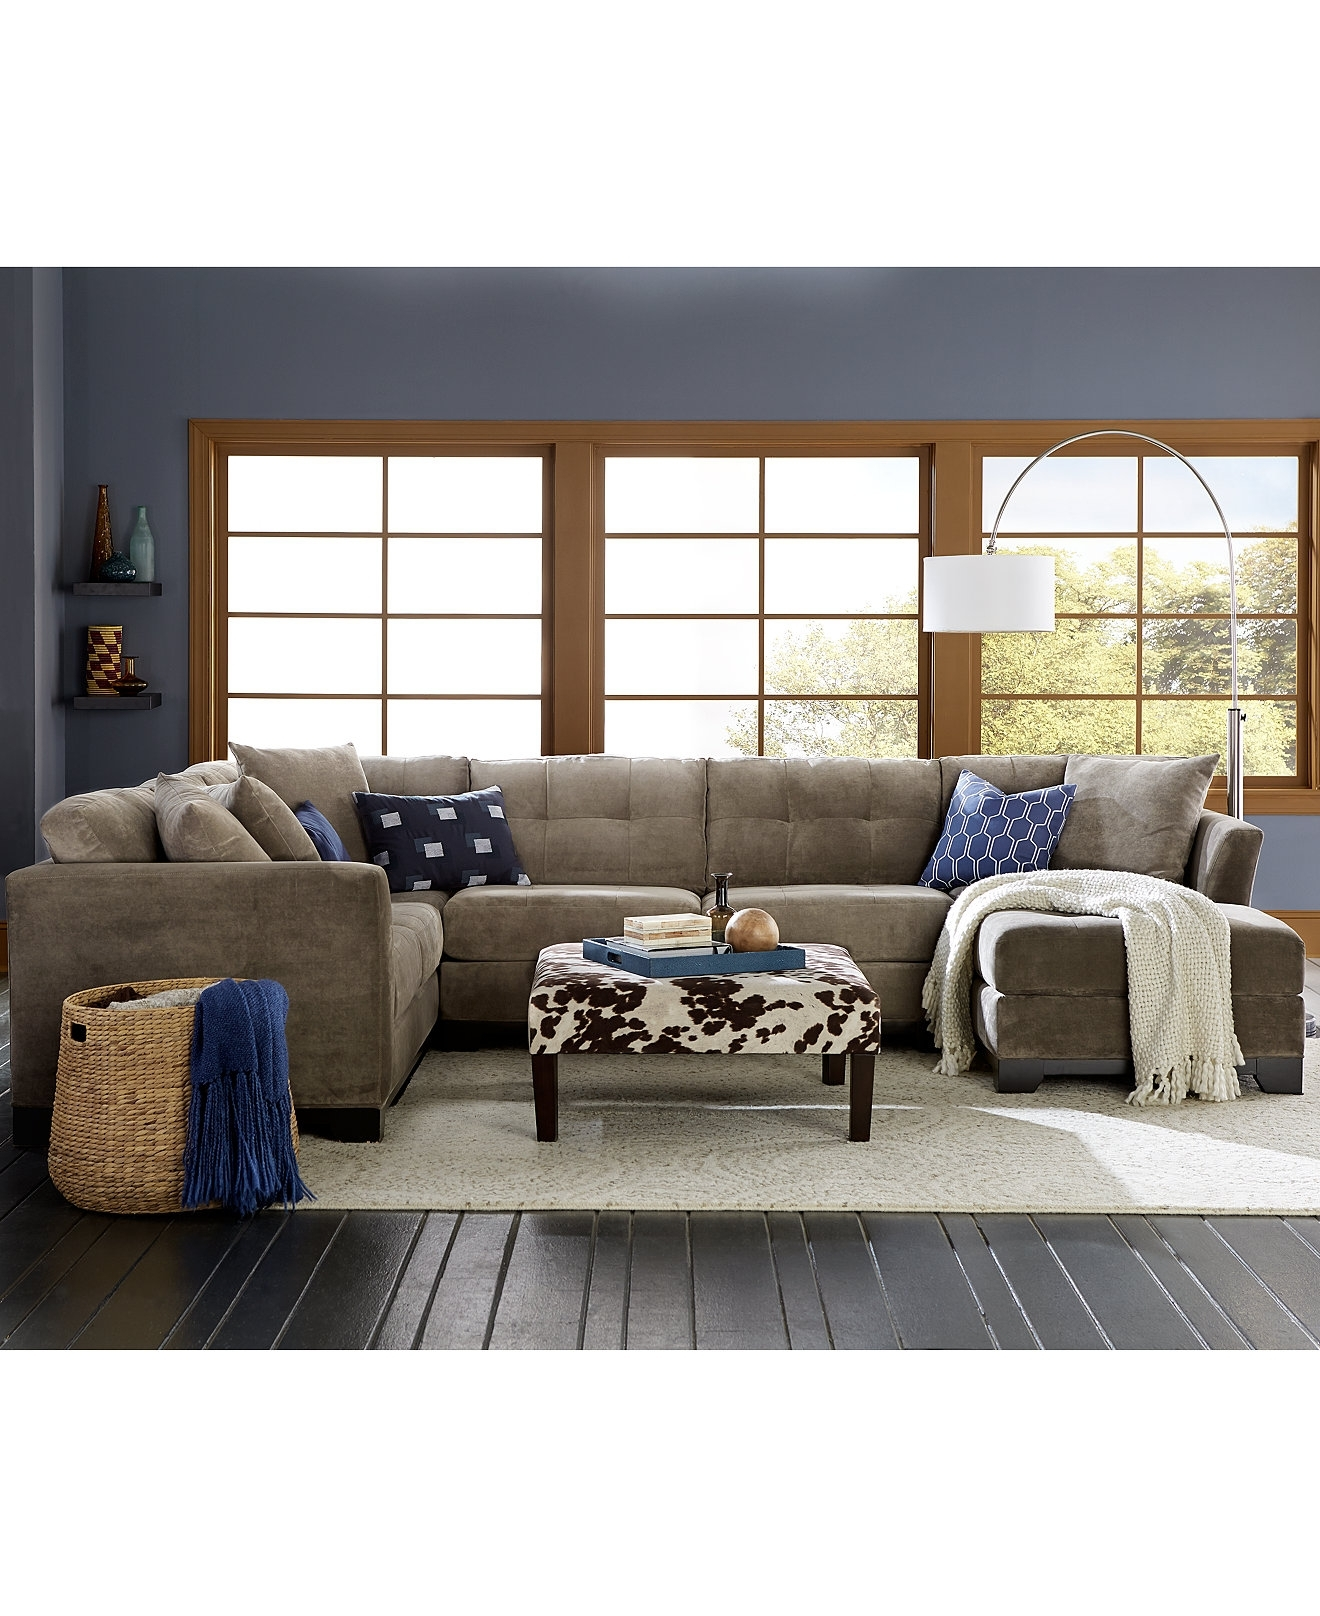 Elliot Fabric Sectional Collection, Created For Macy's | Sectional Intended For Macys Sectional Sofas (View 8 of 10)